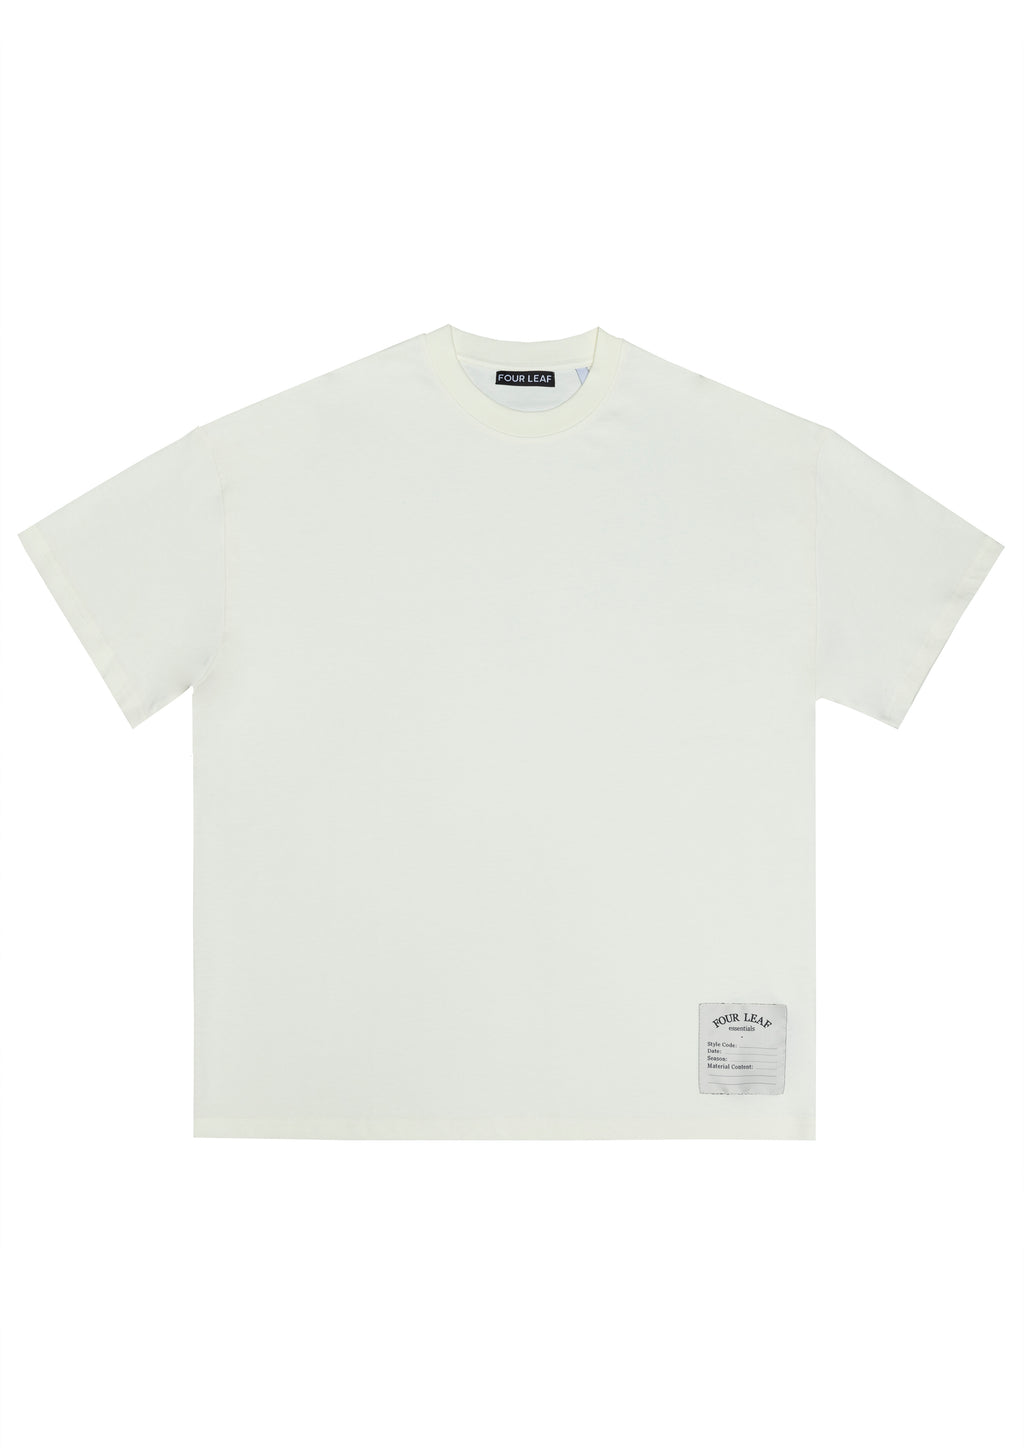 THE CALLAN TEE CREAM MENS